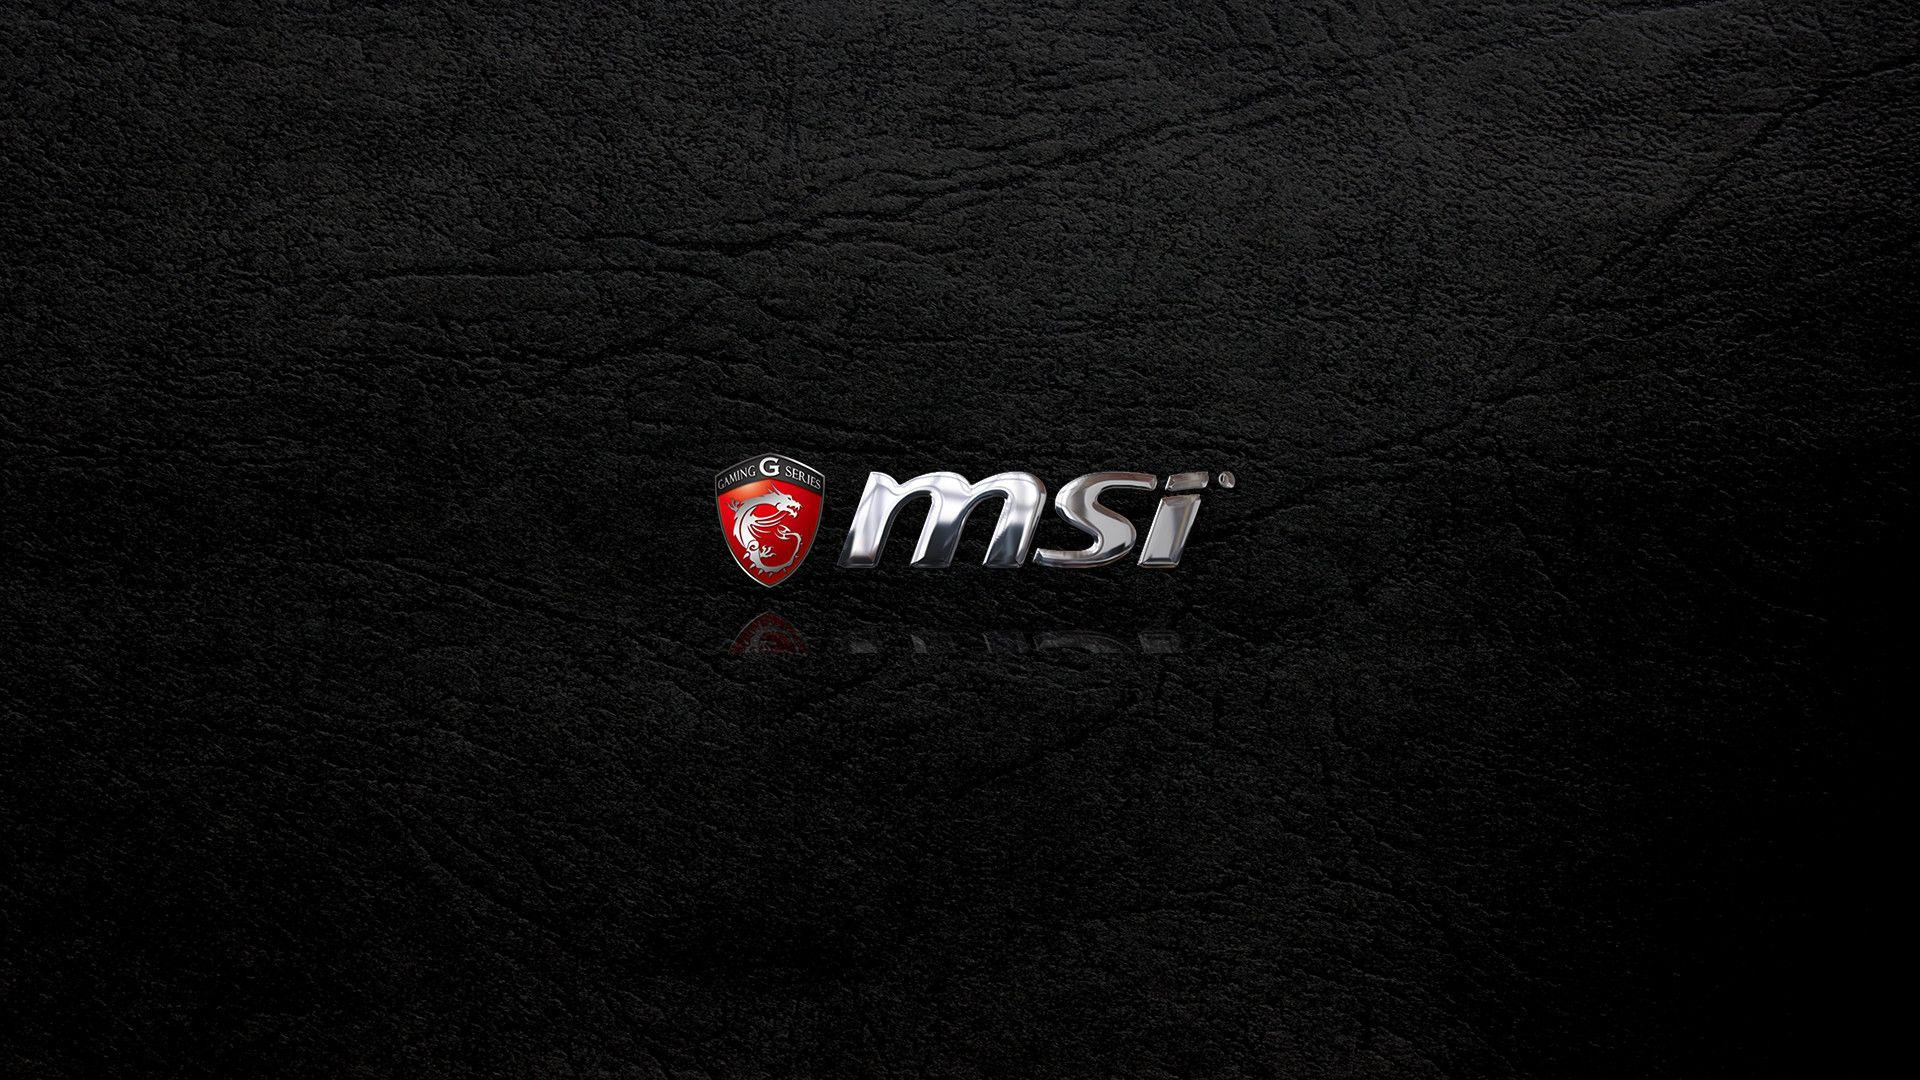 Msi Gaming Wallpapers Wallpaper Cave